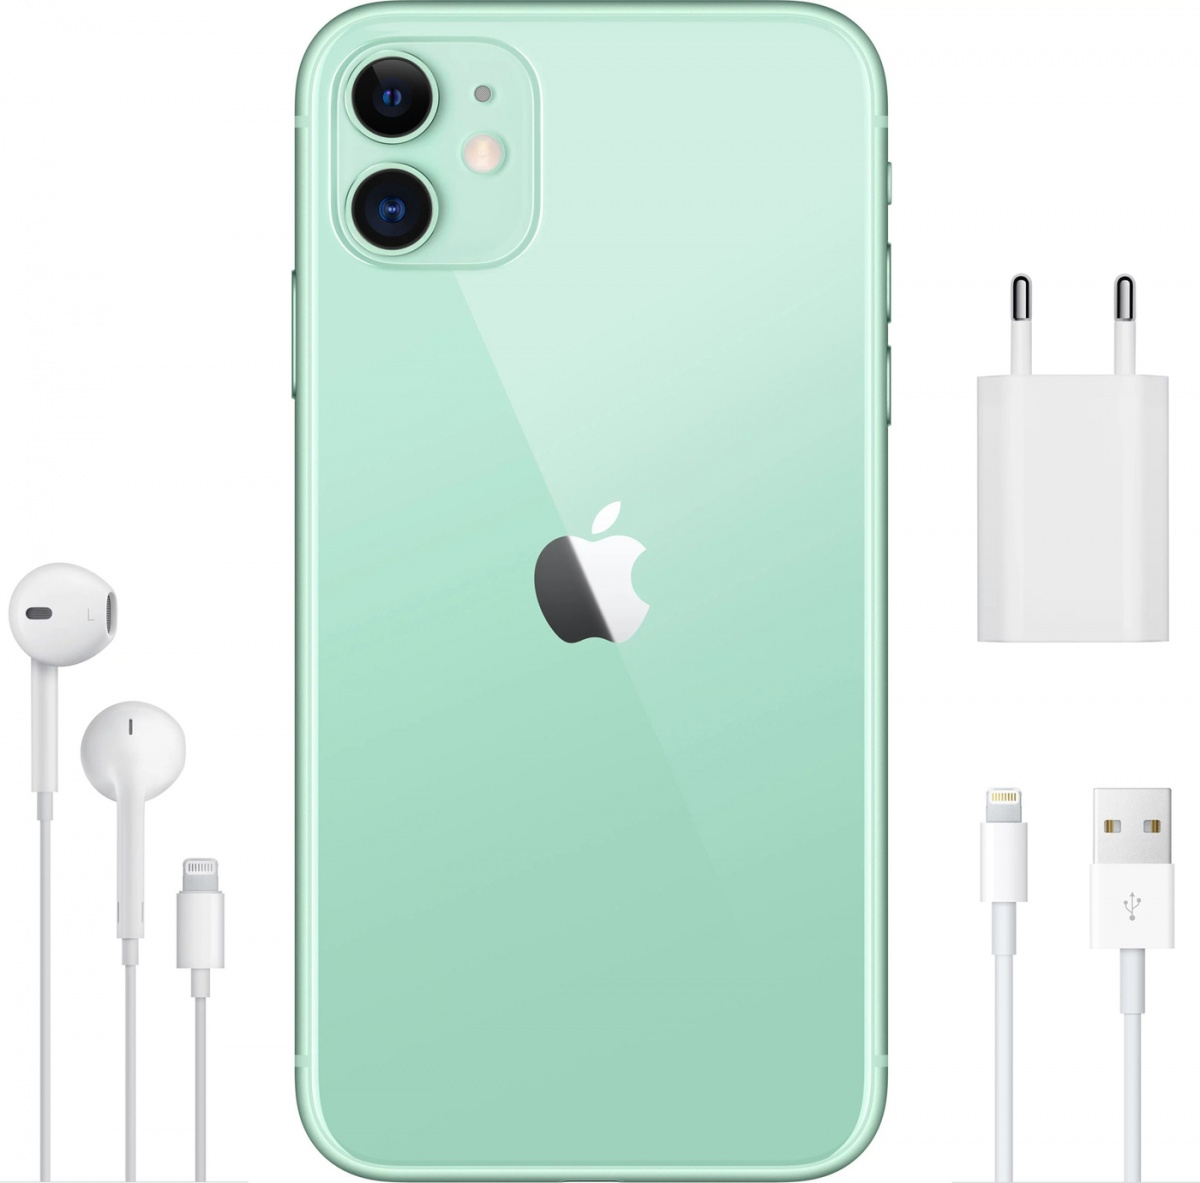 Смартфон Apple iPhone 11 Зеленый / 64 ГБ